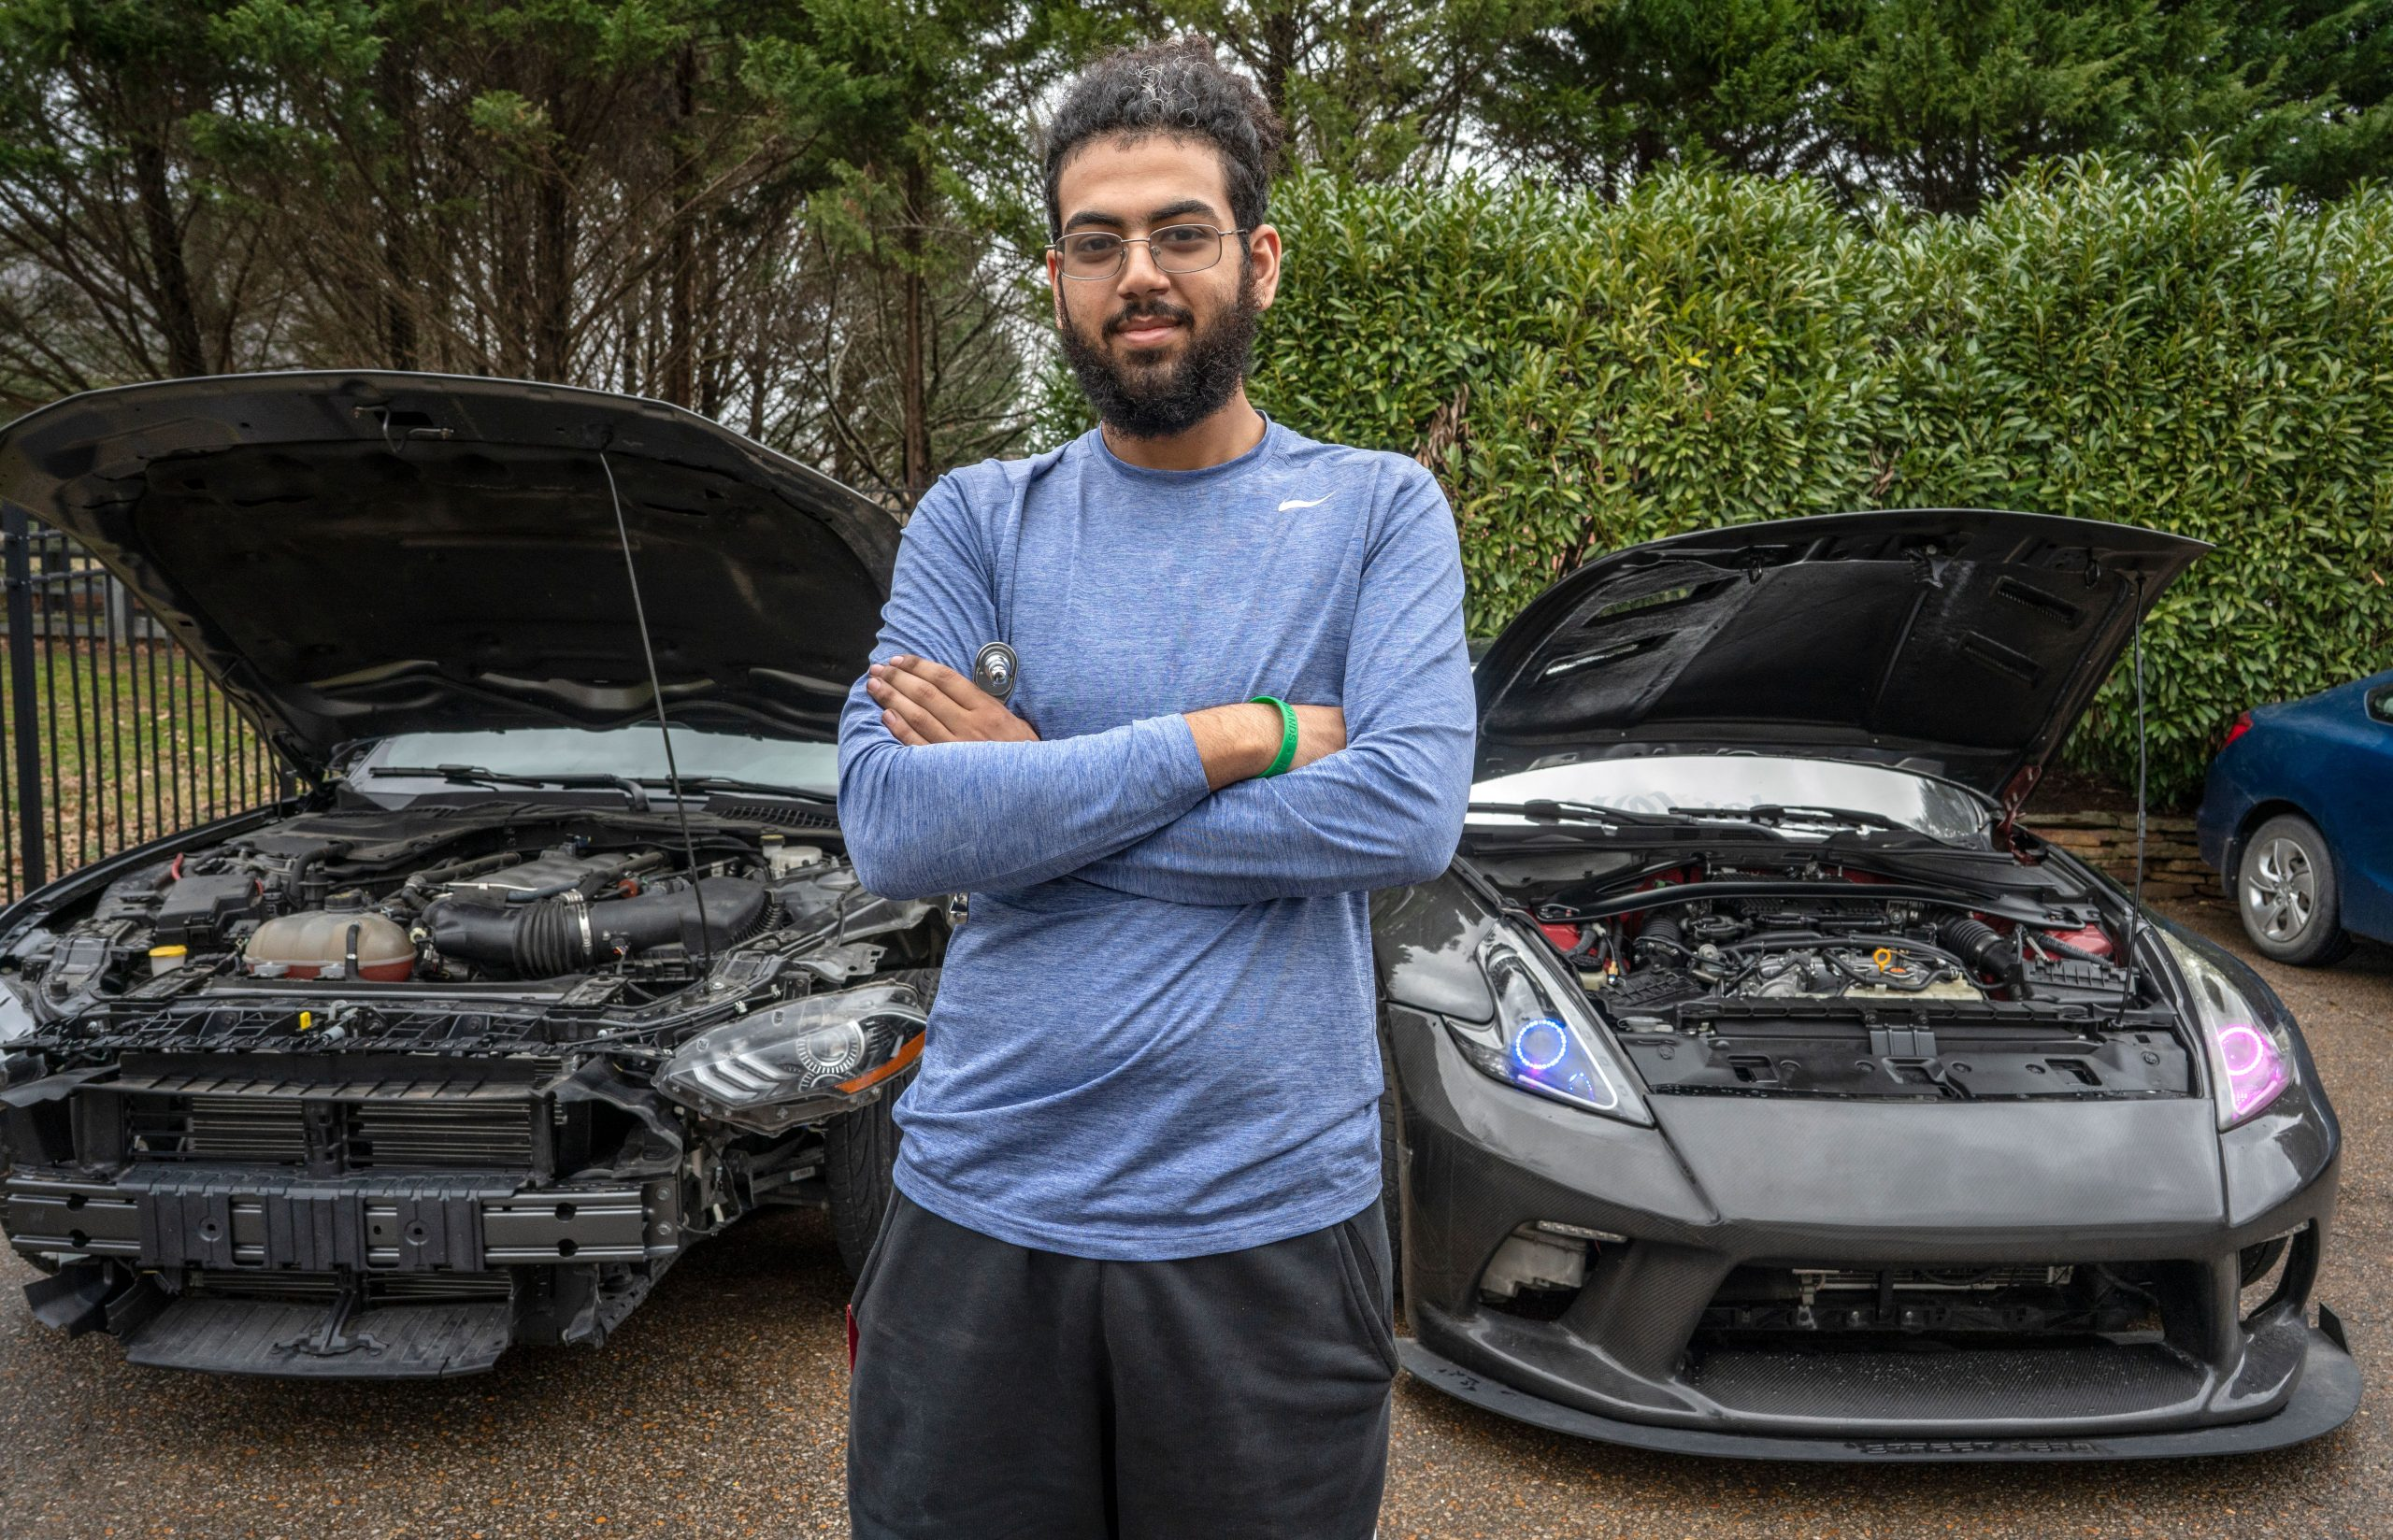 Jacob Yousief stands in front of two of his cars. Yousief learned how to repair cars himself to save money. (Photo: John Partipilo)